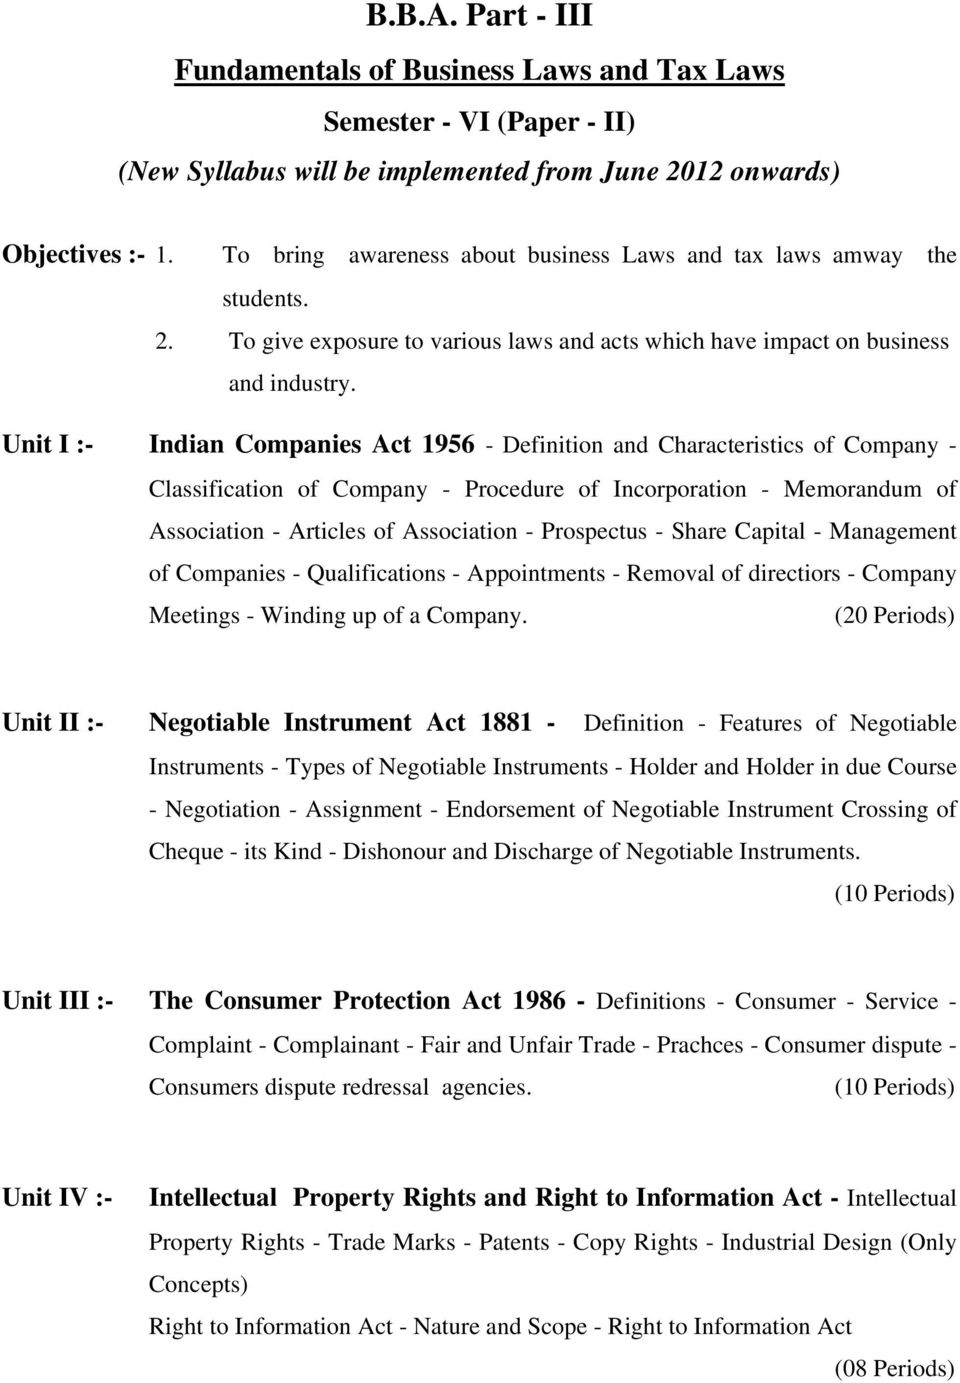 Unit I :- Indian Companies Act 1956 - Definition and Characteristics of Company - Classification of Company - Procedure of Incorporation - Memorandum of Association - Articles of Association -